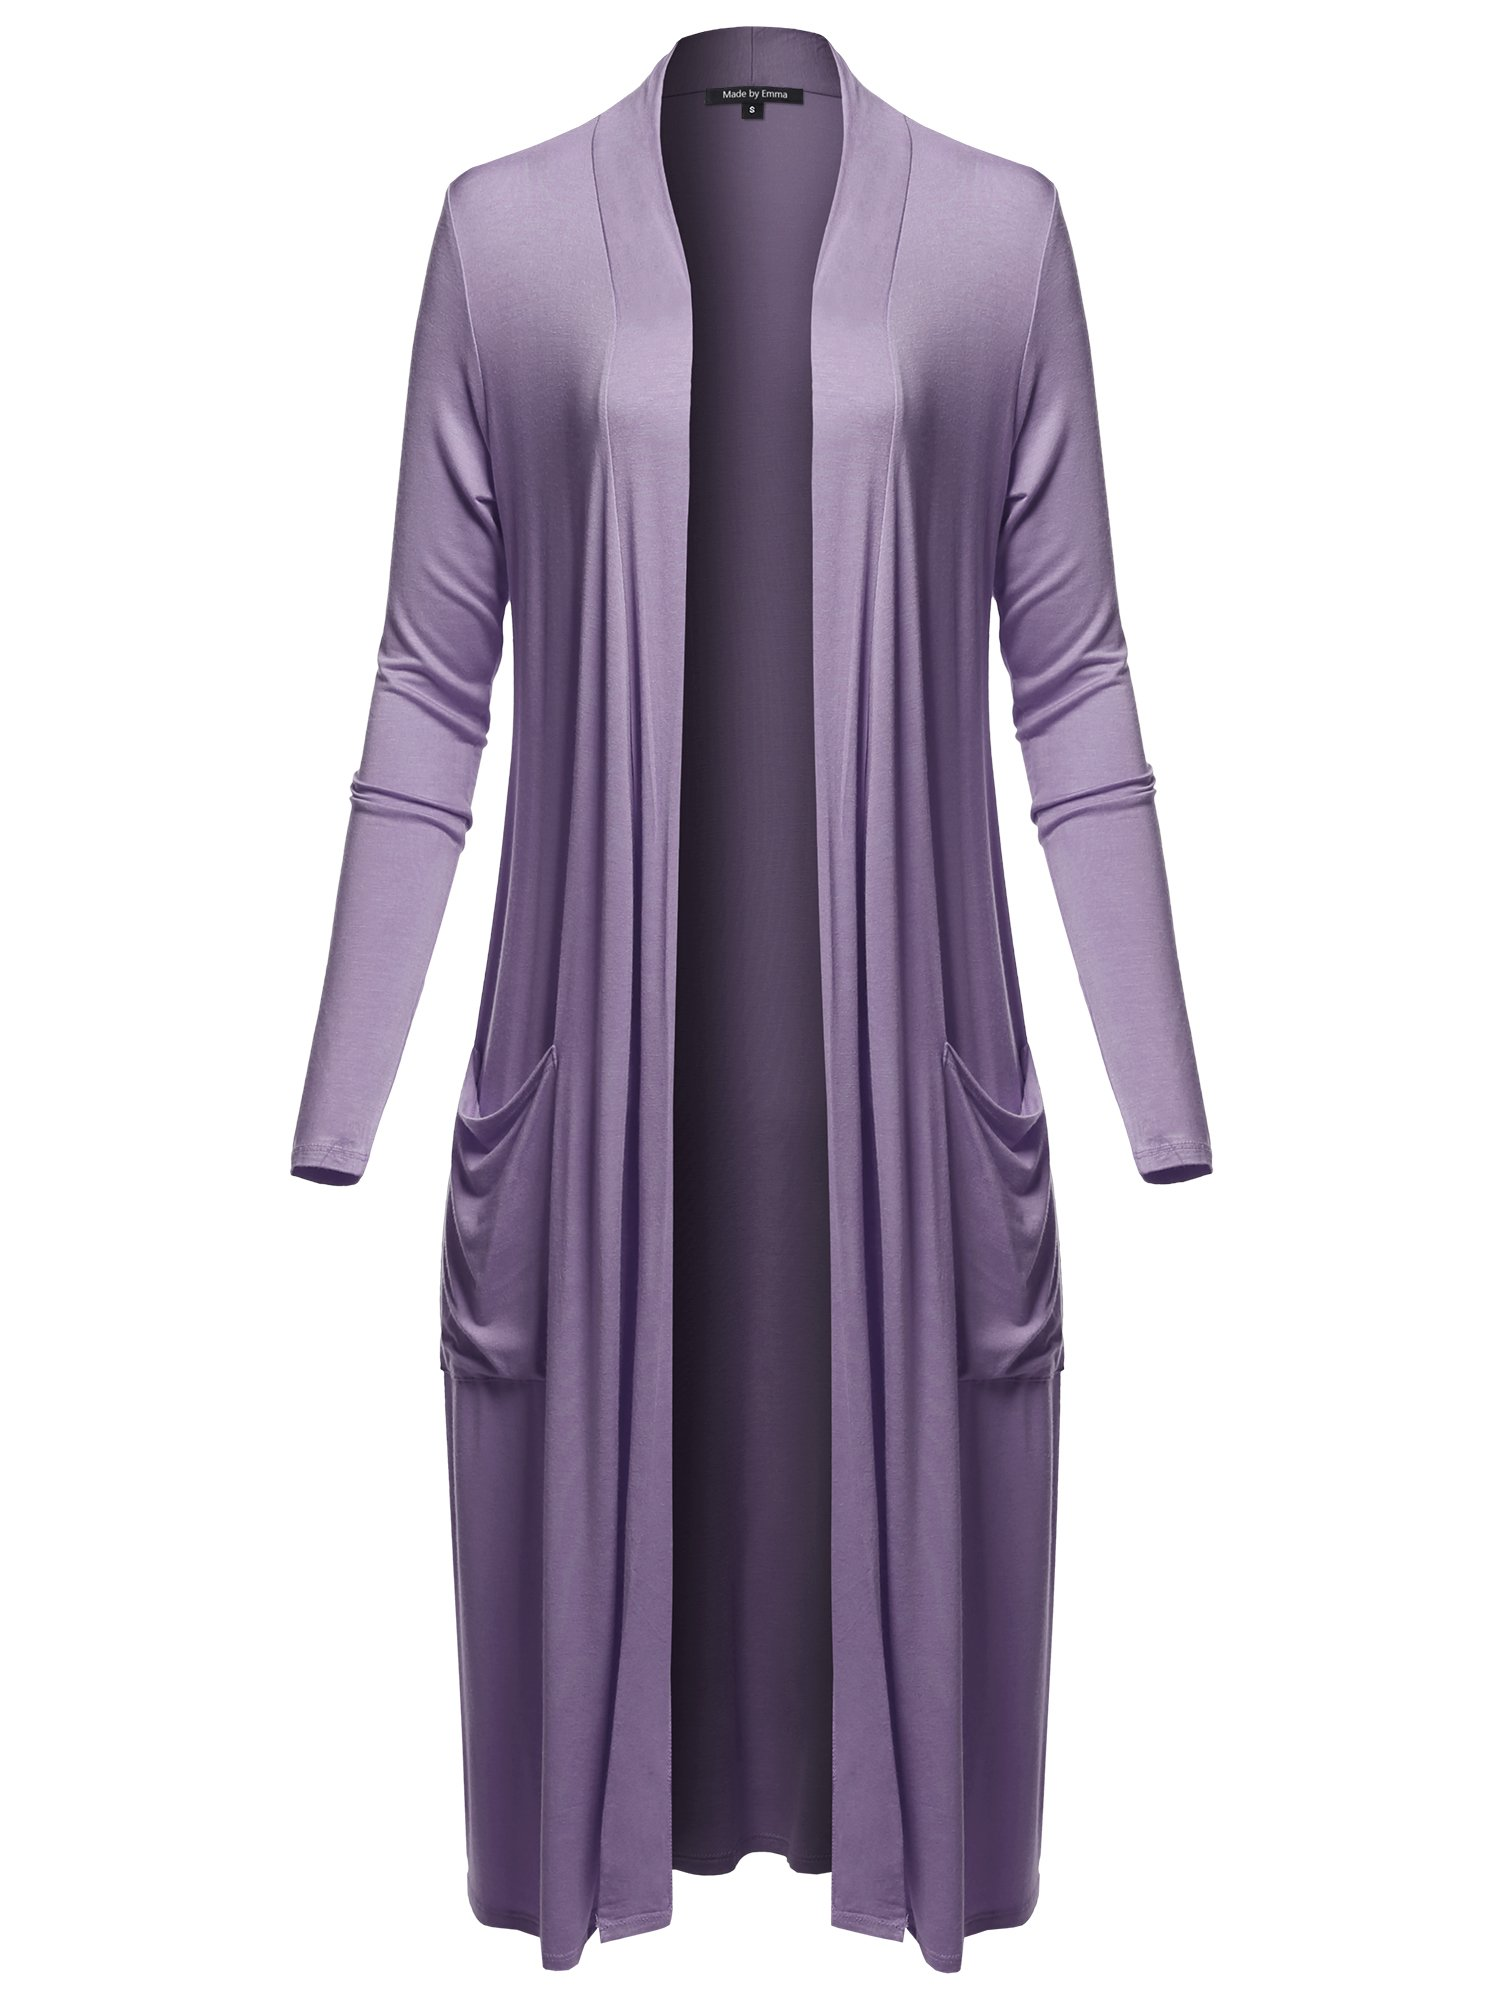 Made by Emma Long Sleeve Side Pockets Midi Length Open Front Cardigan Lilac XL